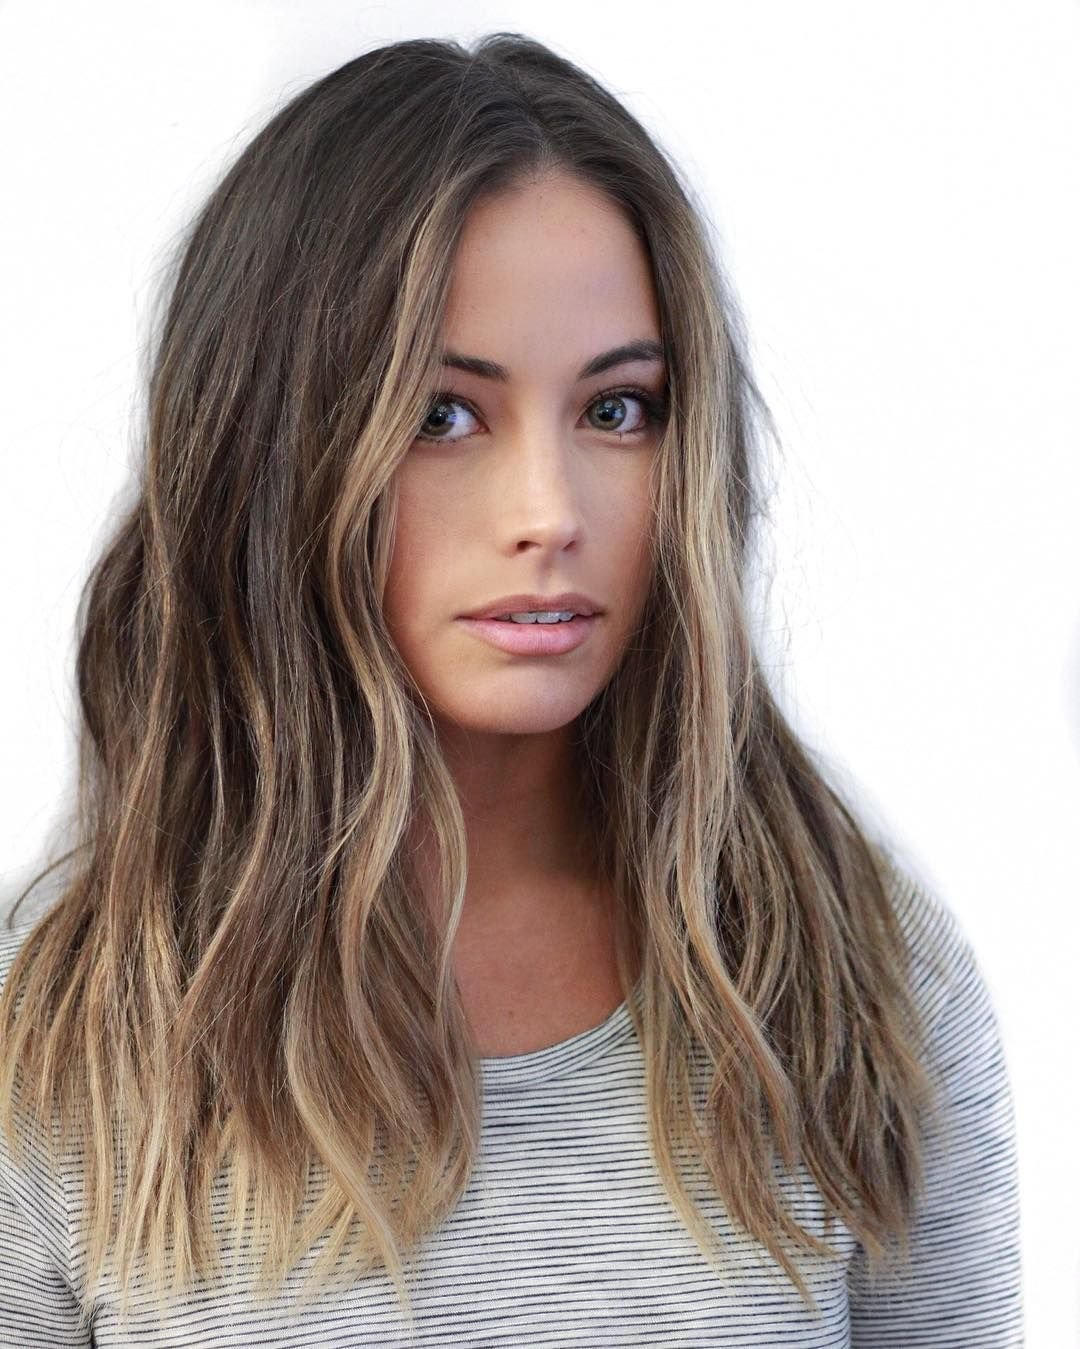 The Best Cool 55 Stylish Hairstyle Ideas For Mid Length Hair And Mid Length Haircuts – Be Bold And Unique Pictures